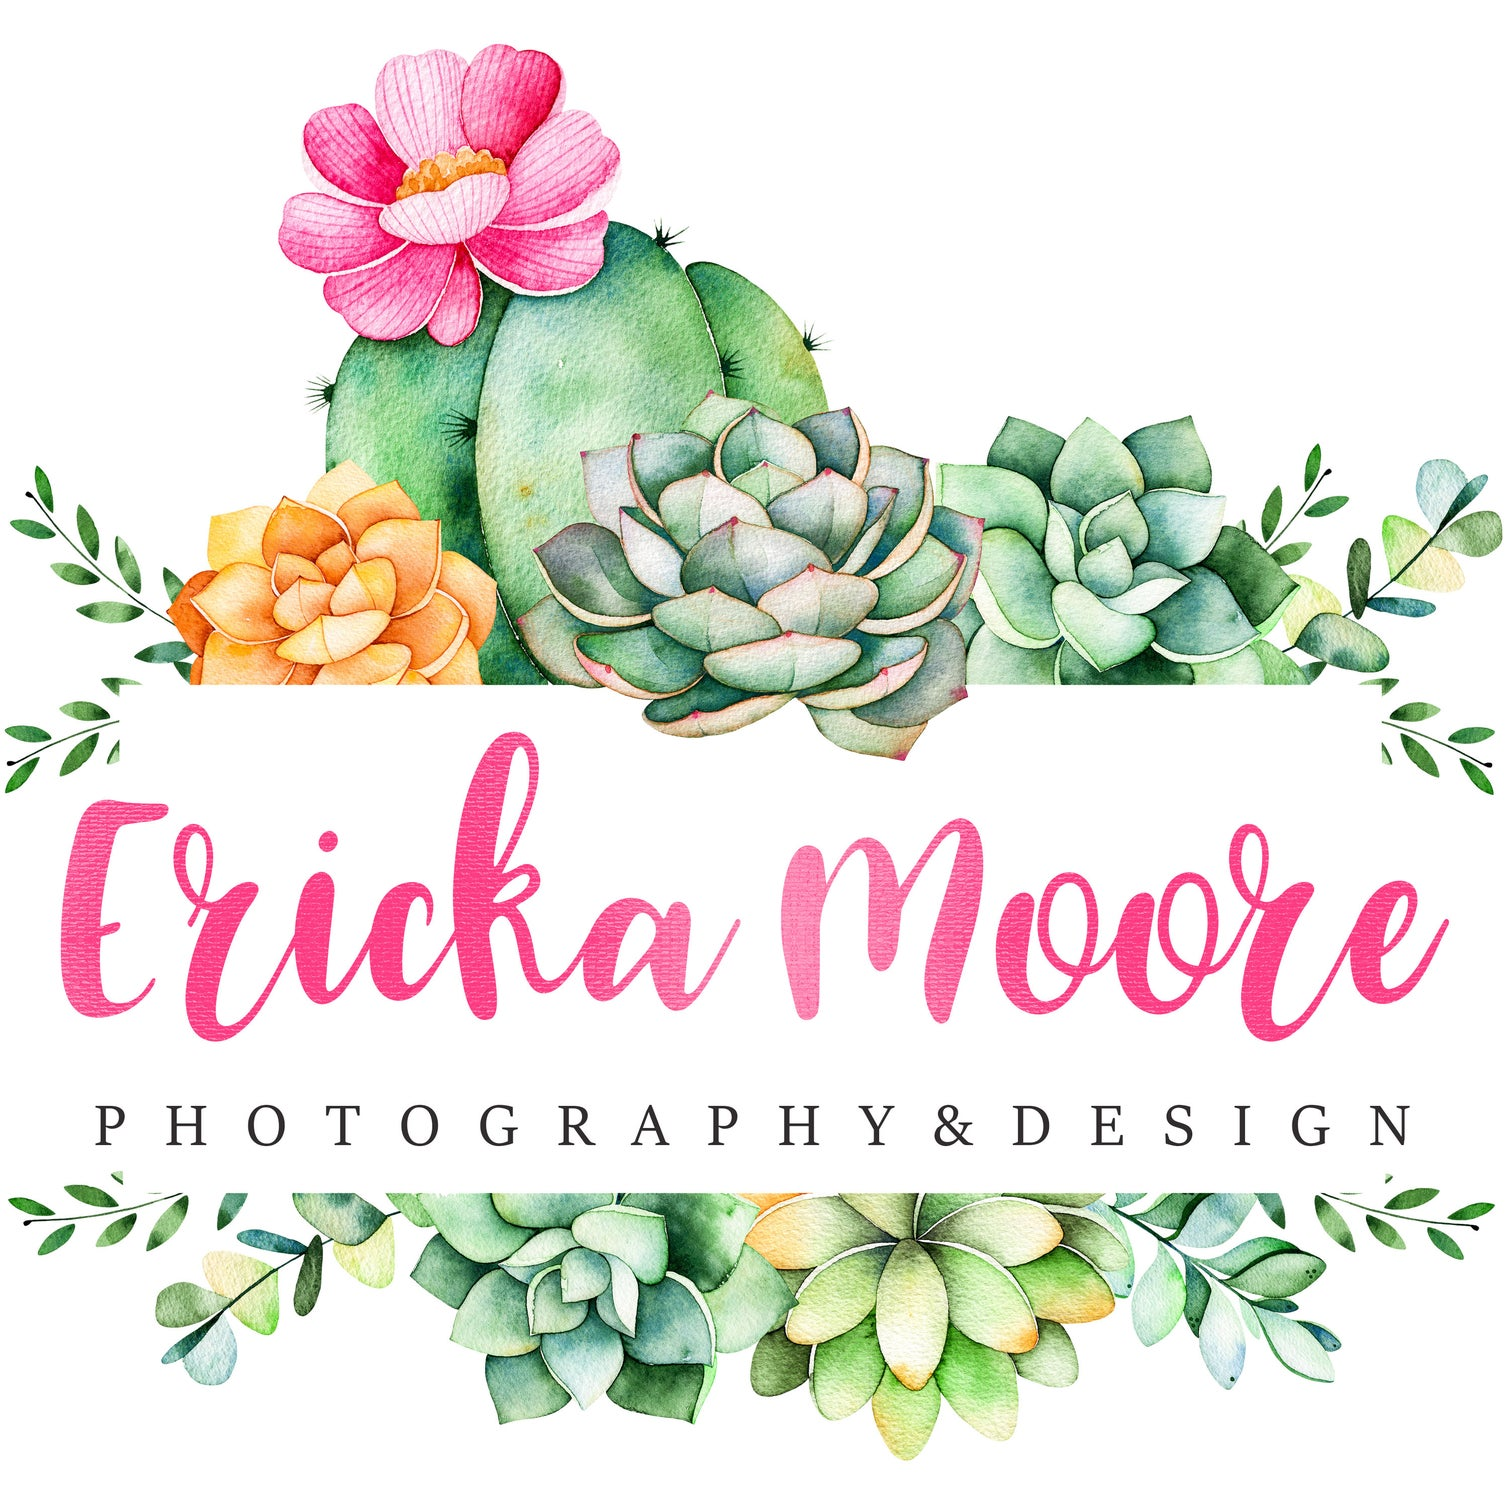 Ericka Moore Photography & Design